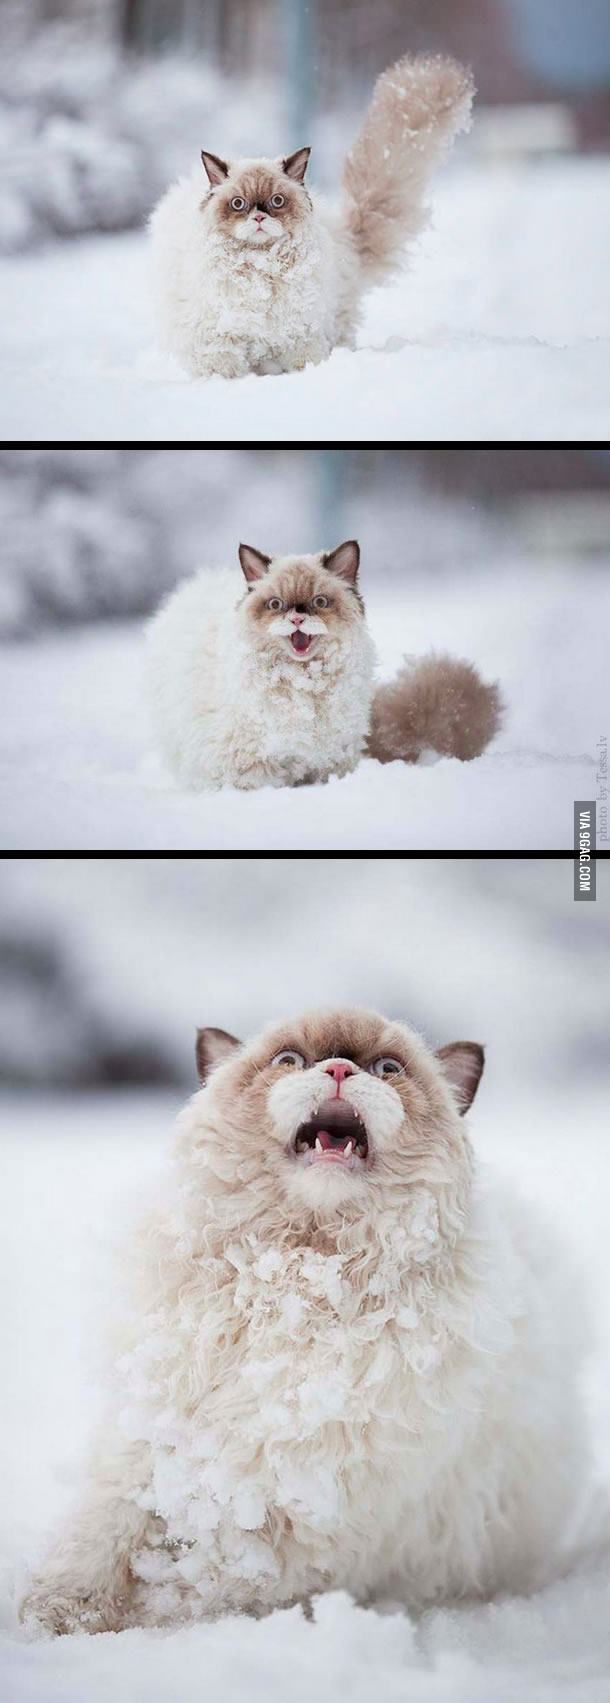 Cat sees snow for the first time.